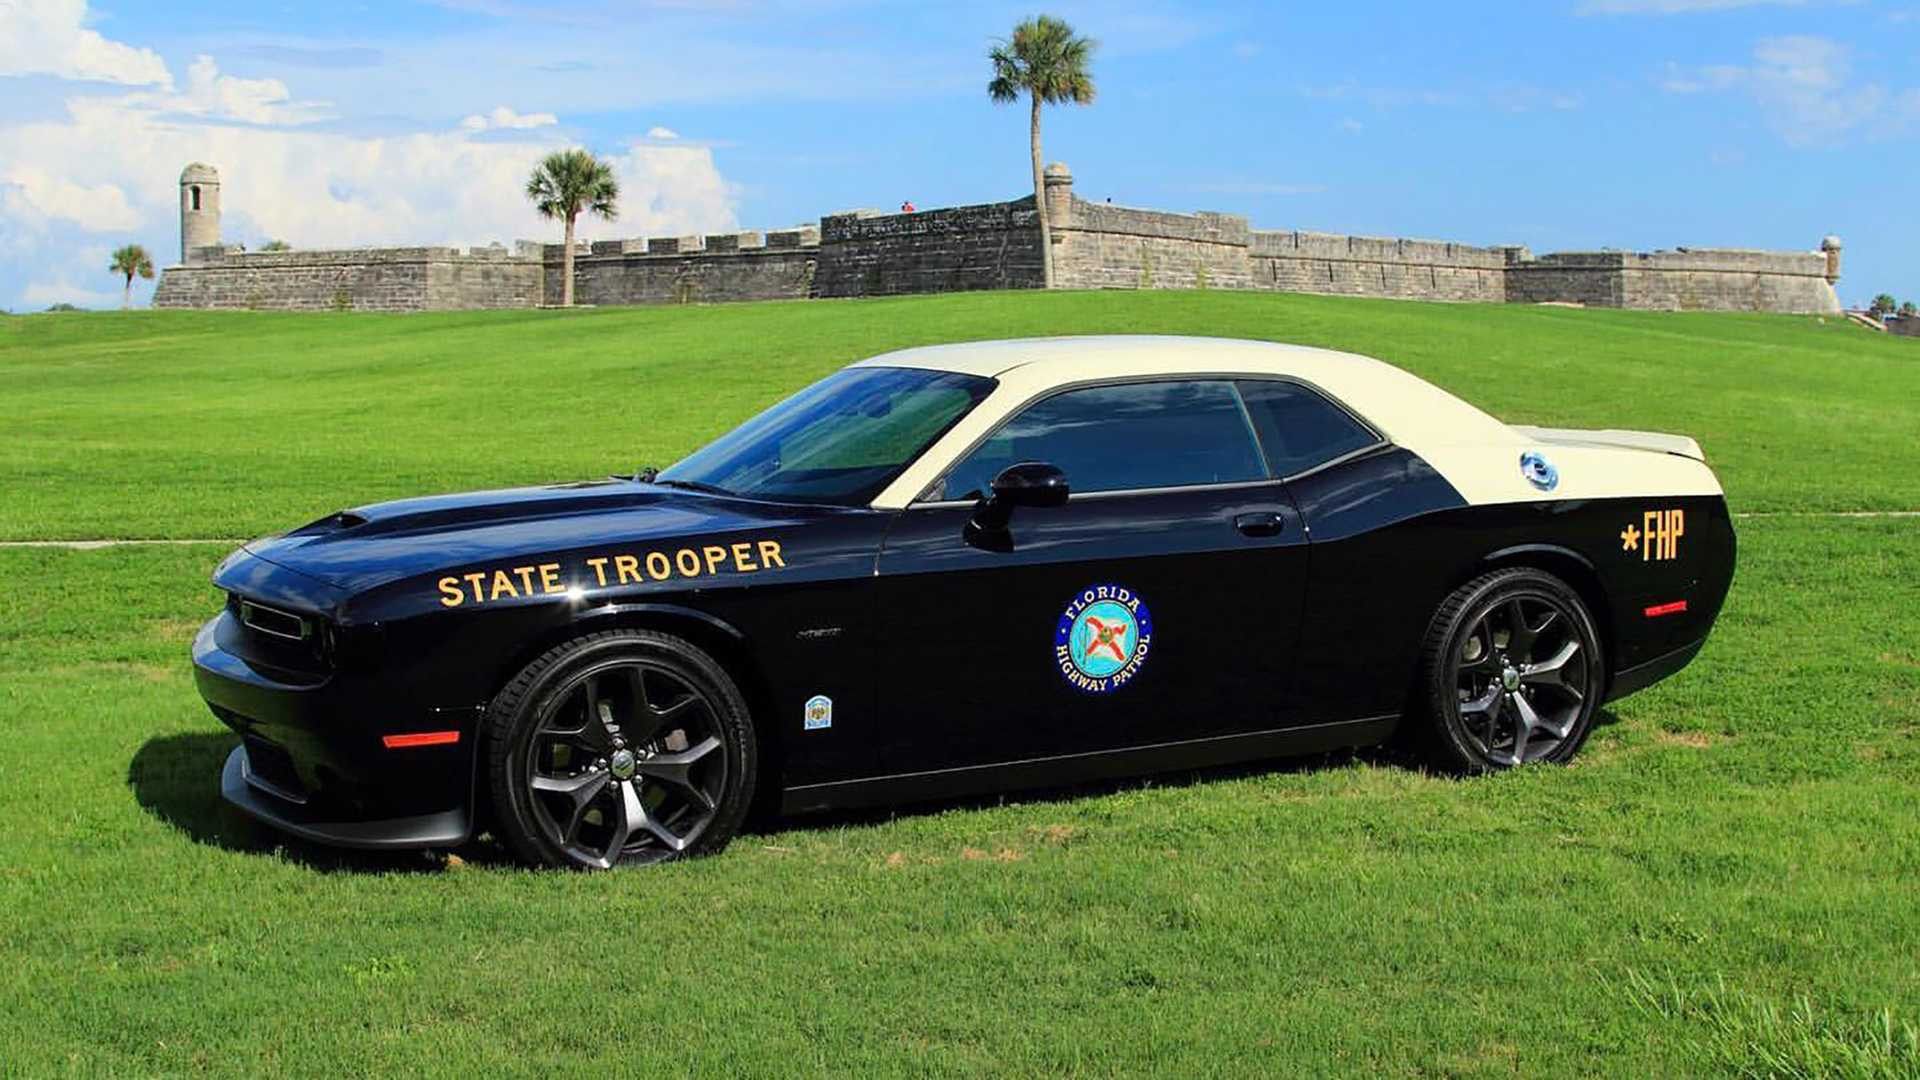 2019 Dodge Challenger Suits Up For Duty With Florida Highway